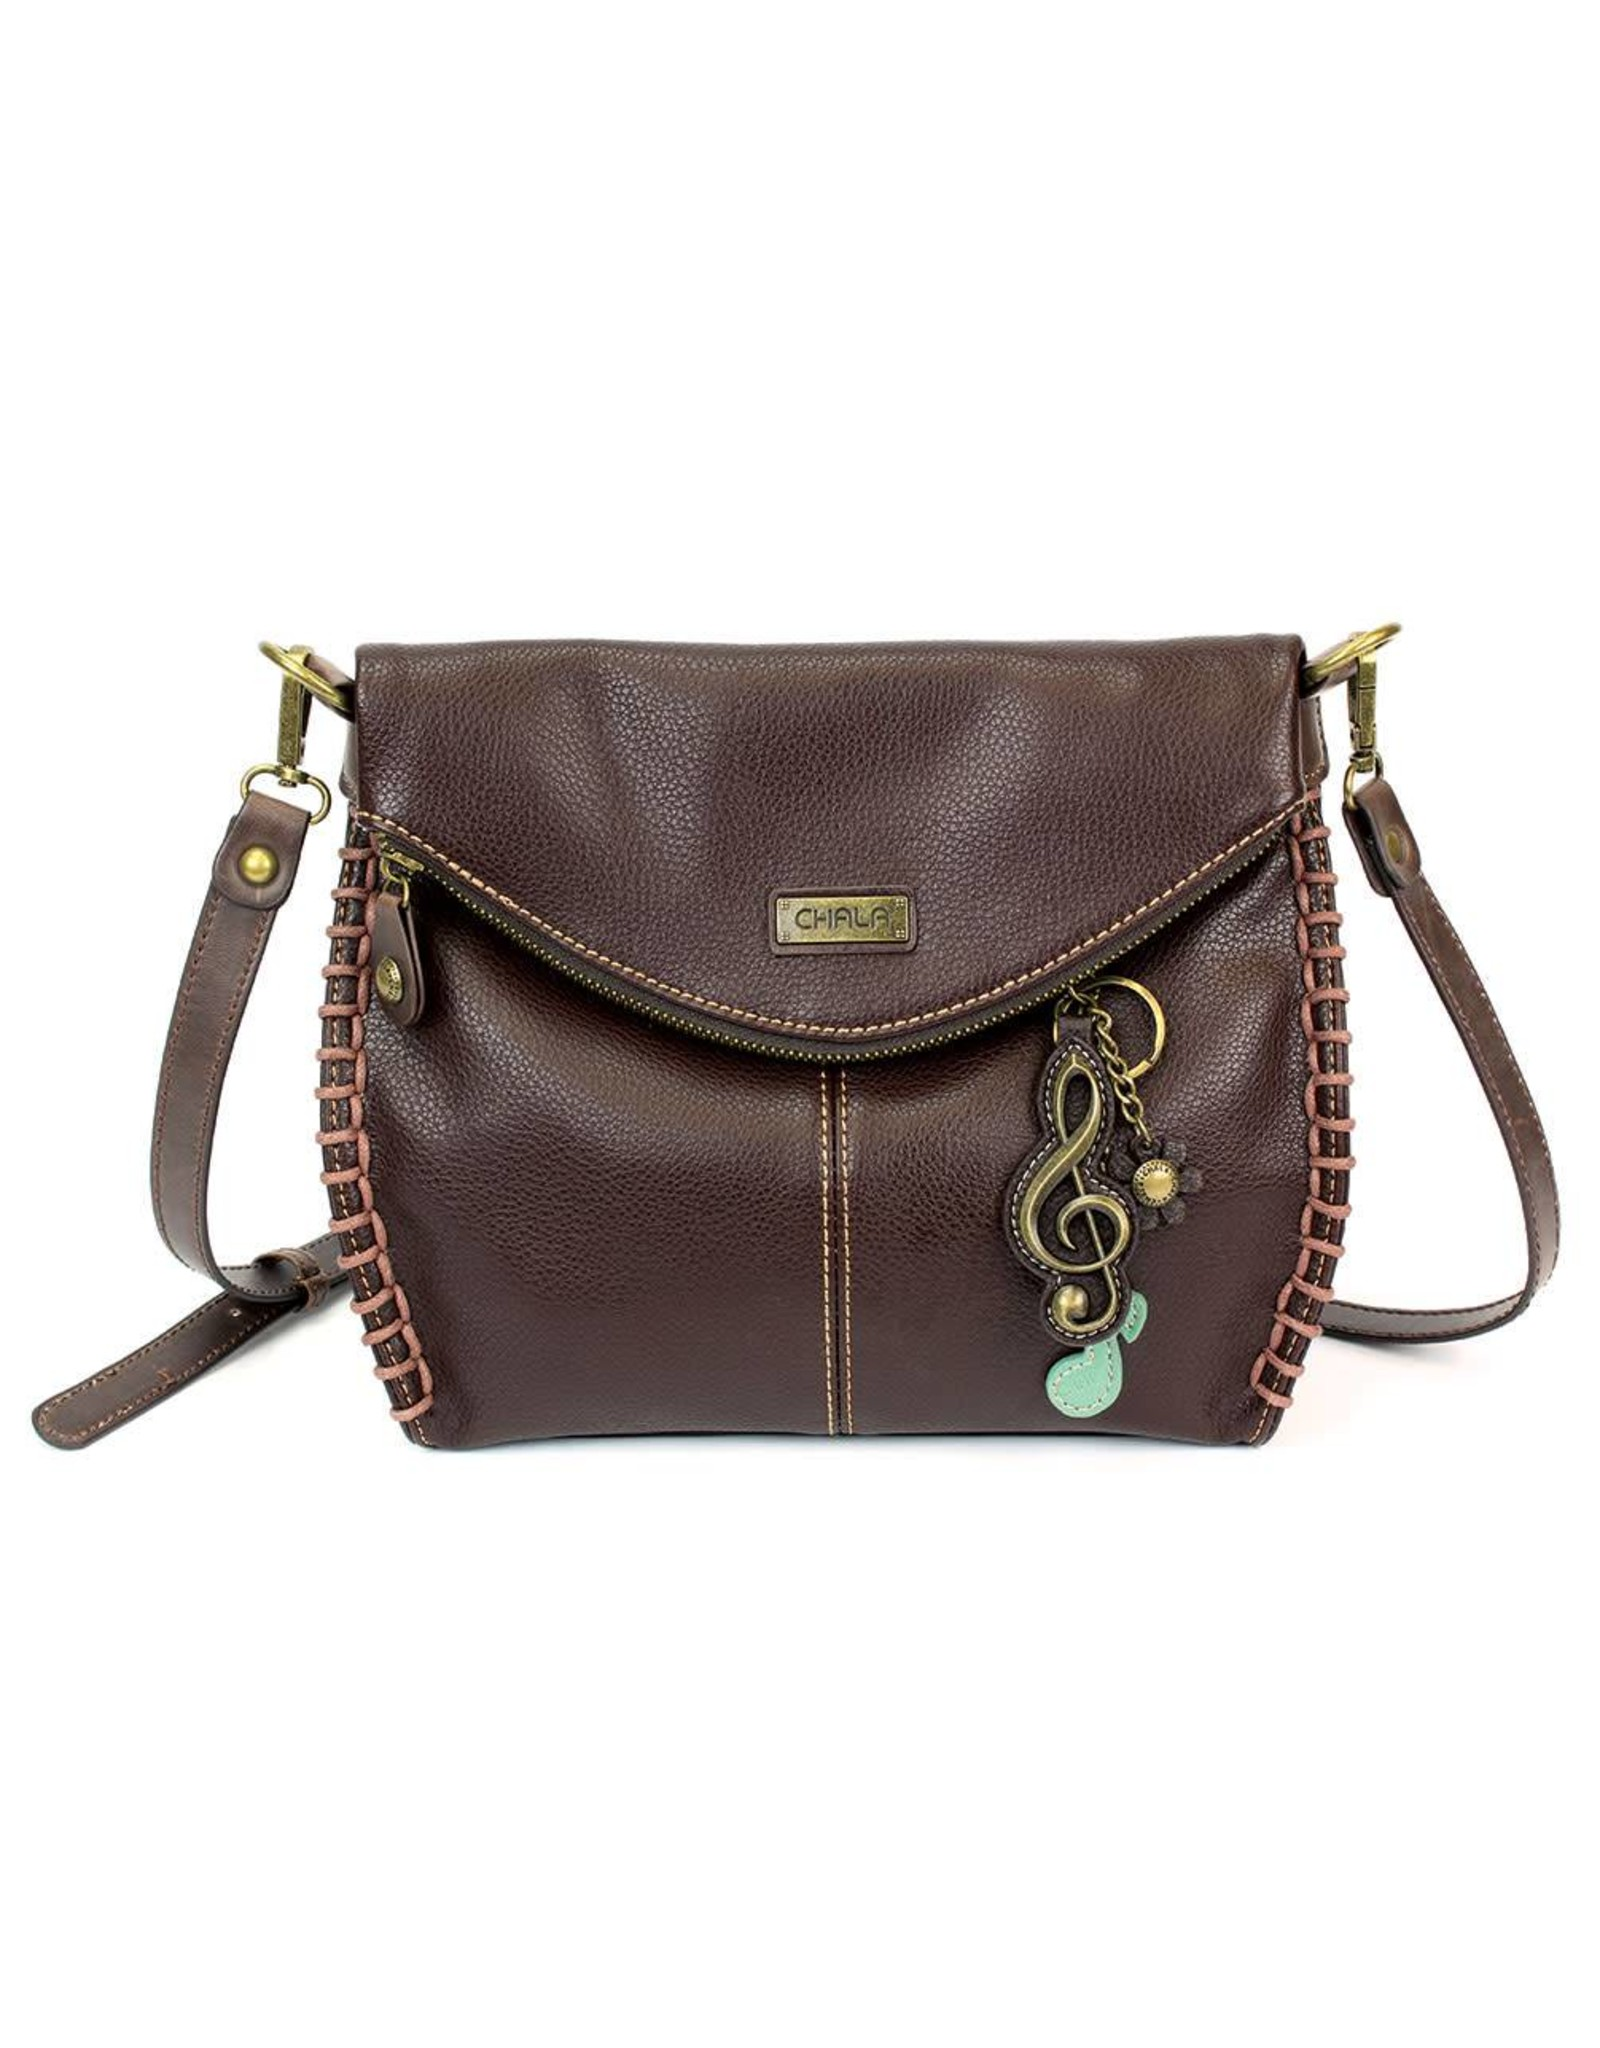 Chala Charming Crossbody - Dark Brown - Treble Clef